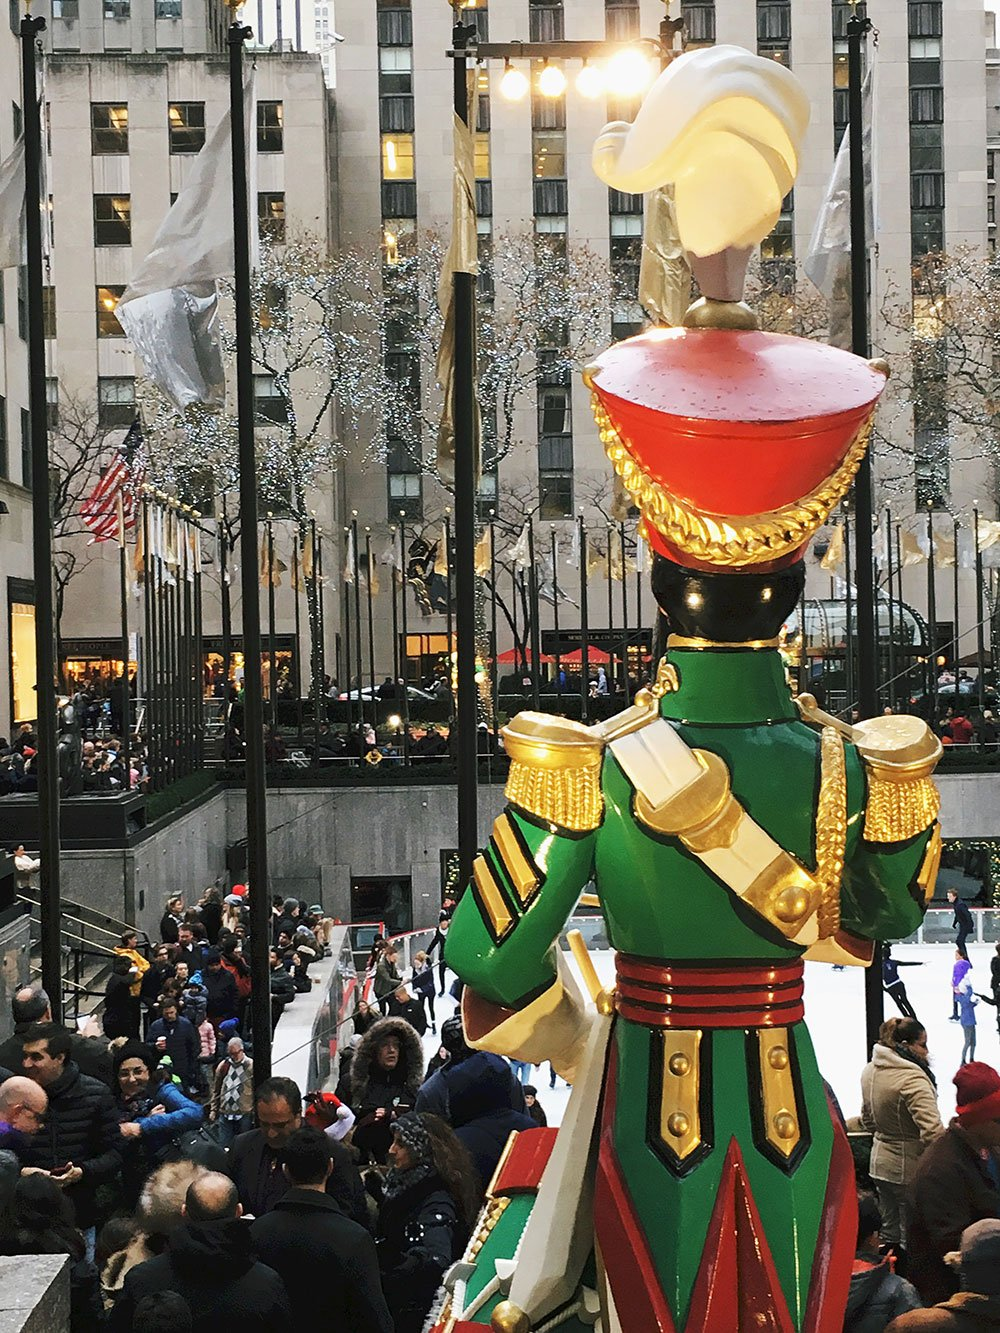 Toy soldier NYC Christmas decoration